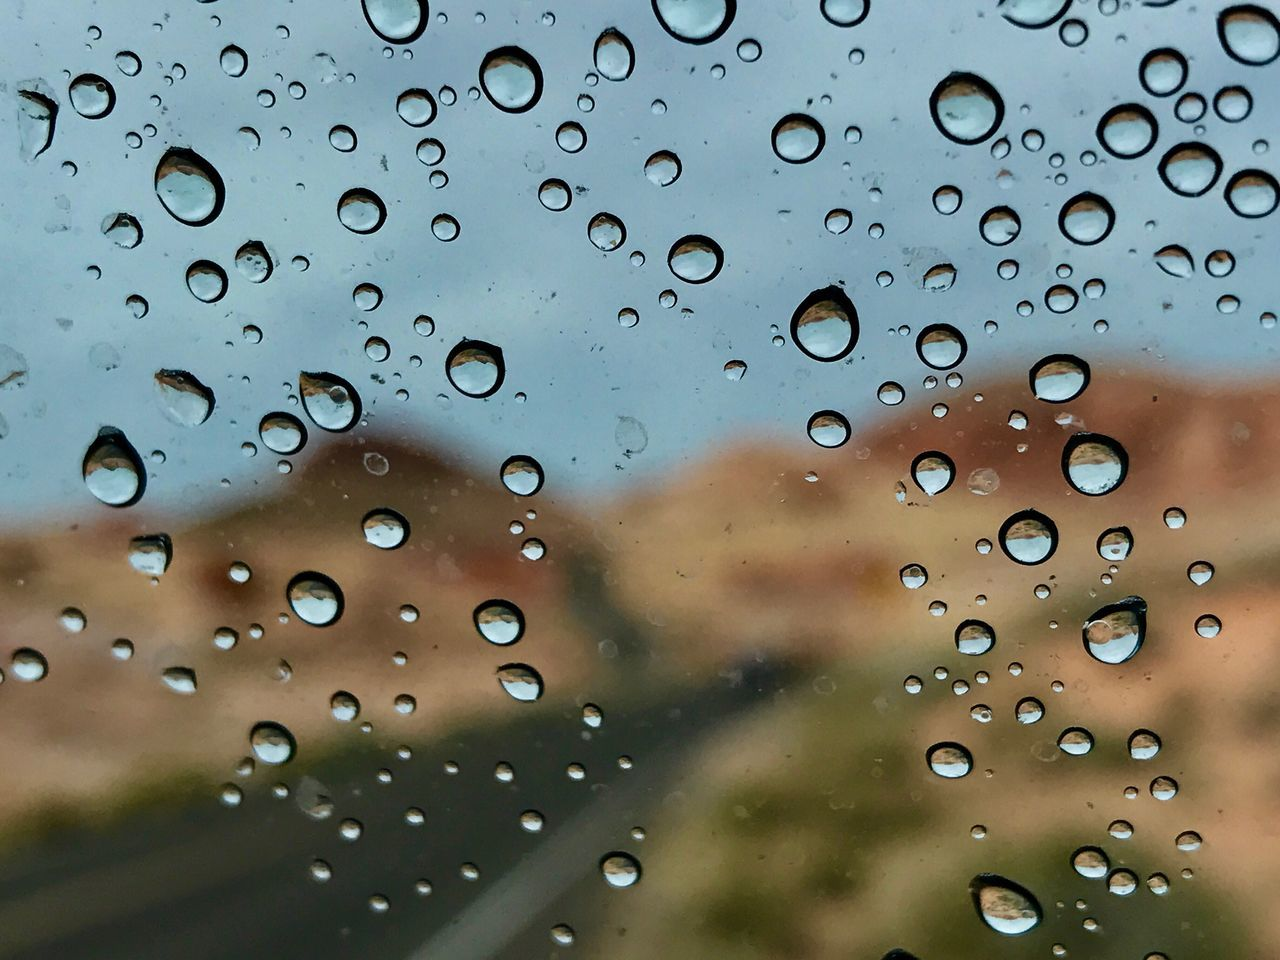 Rain drop Window Drop Water Close-up Focus On Foreground Rain Rainy Season Wet No People Sky Day Fragility RainDrop Nature Outdoors Freshness Reflection Car Wind Shield Phone Photography